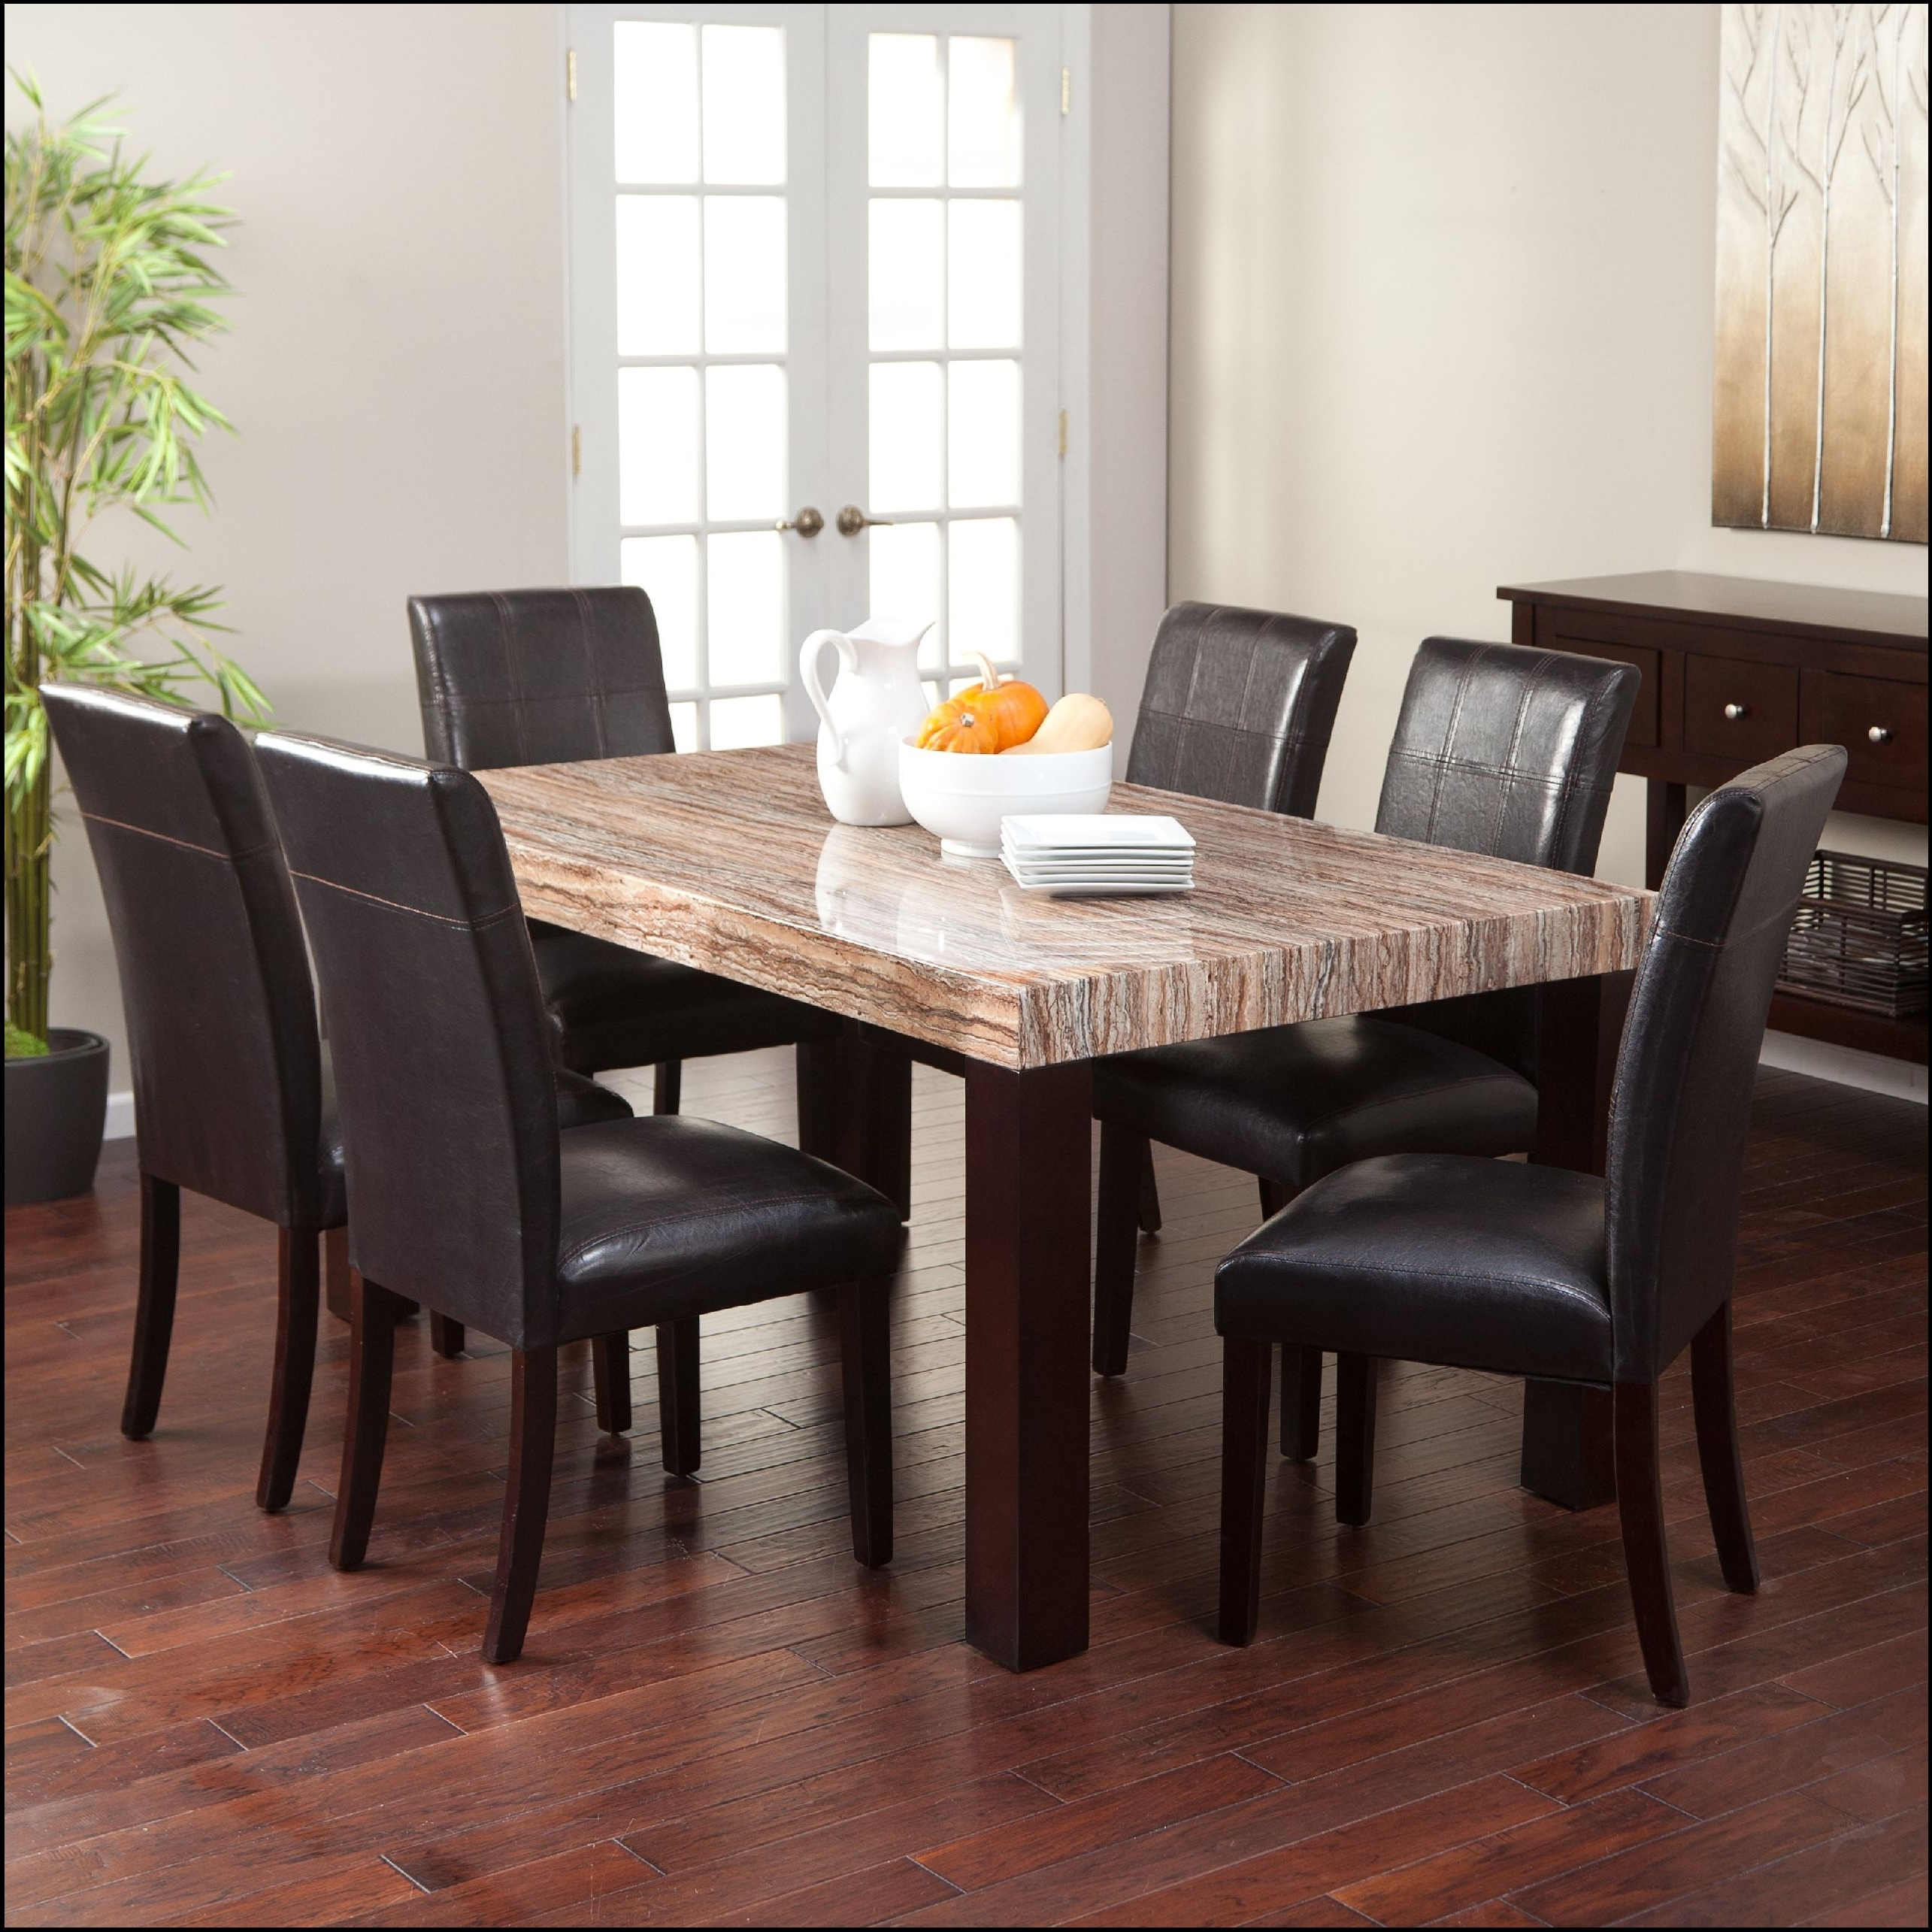 Latest 6 Chair Dining Table Sets Pertaining To Modern The Super Fun Glass Dining Table Edinburgh Photos With Dining (View 24 of 25)